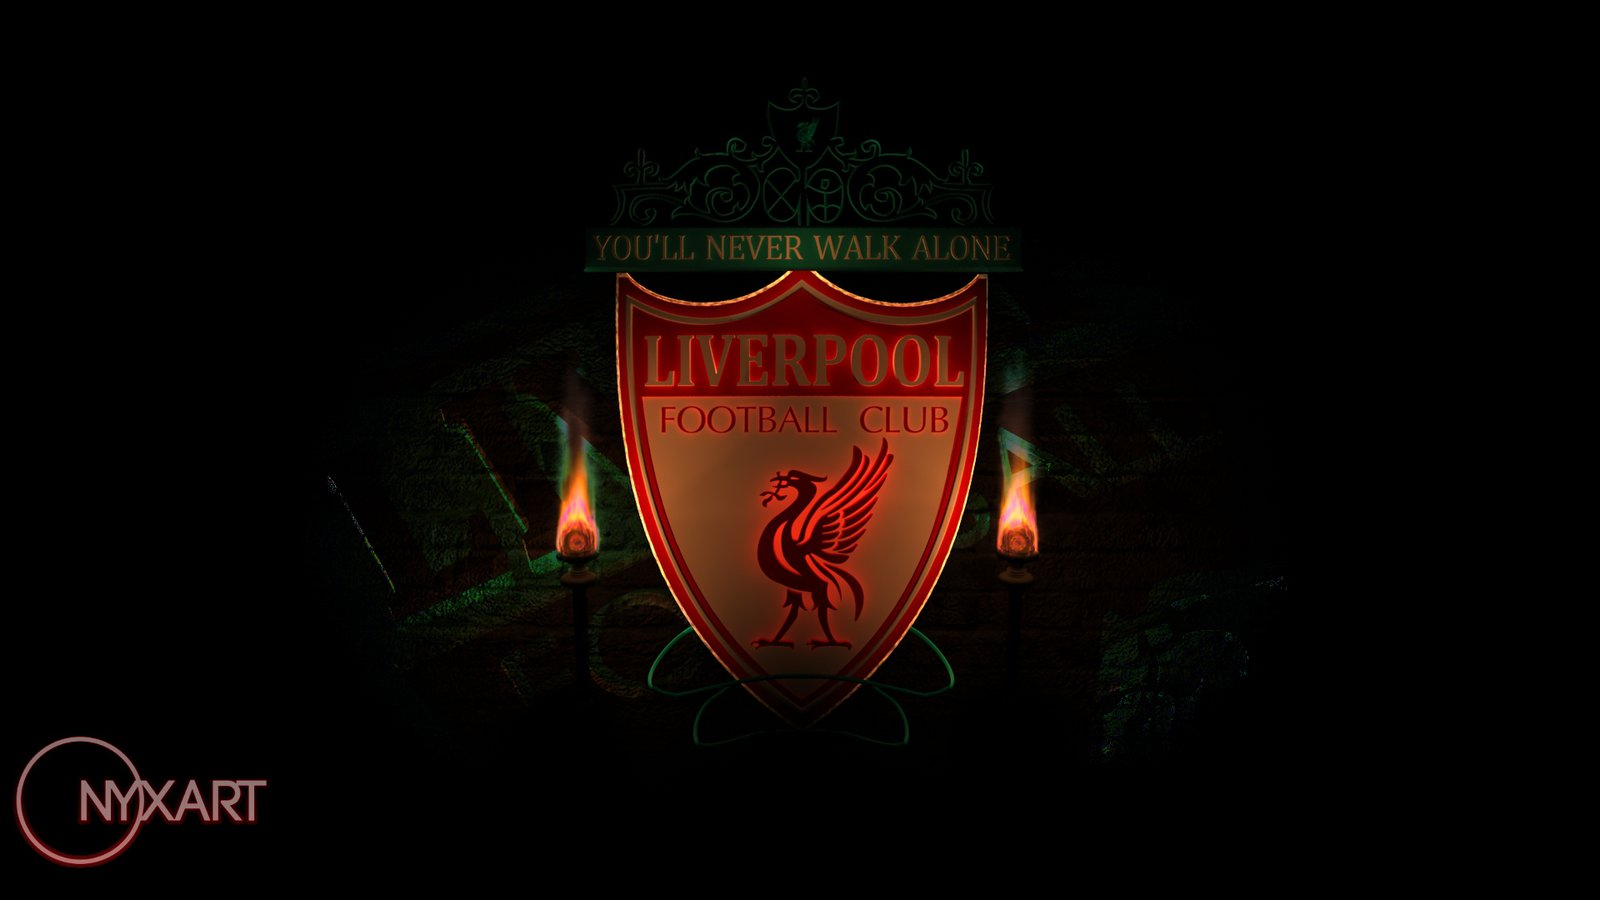 Free Download Liverpool Fc Logo Wallpaper By Jc Tuman 1600x900 For Your Desktop Mobile Tablet Explore 50 Liverpool Logo Wallpaper Liverpool Wallpaper 2015 Anfield Wallpaper Liverpool Wallpaper Android